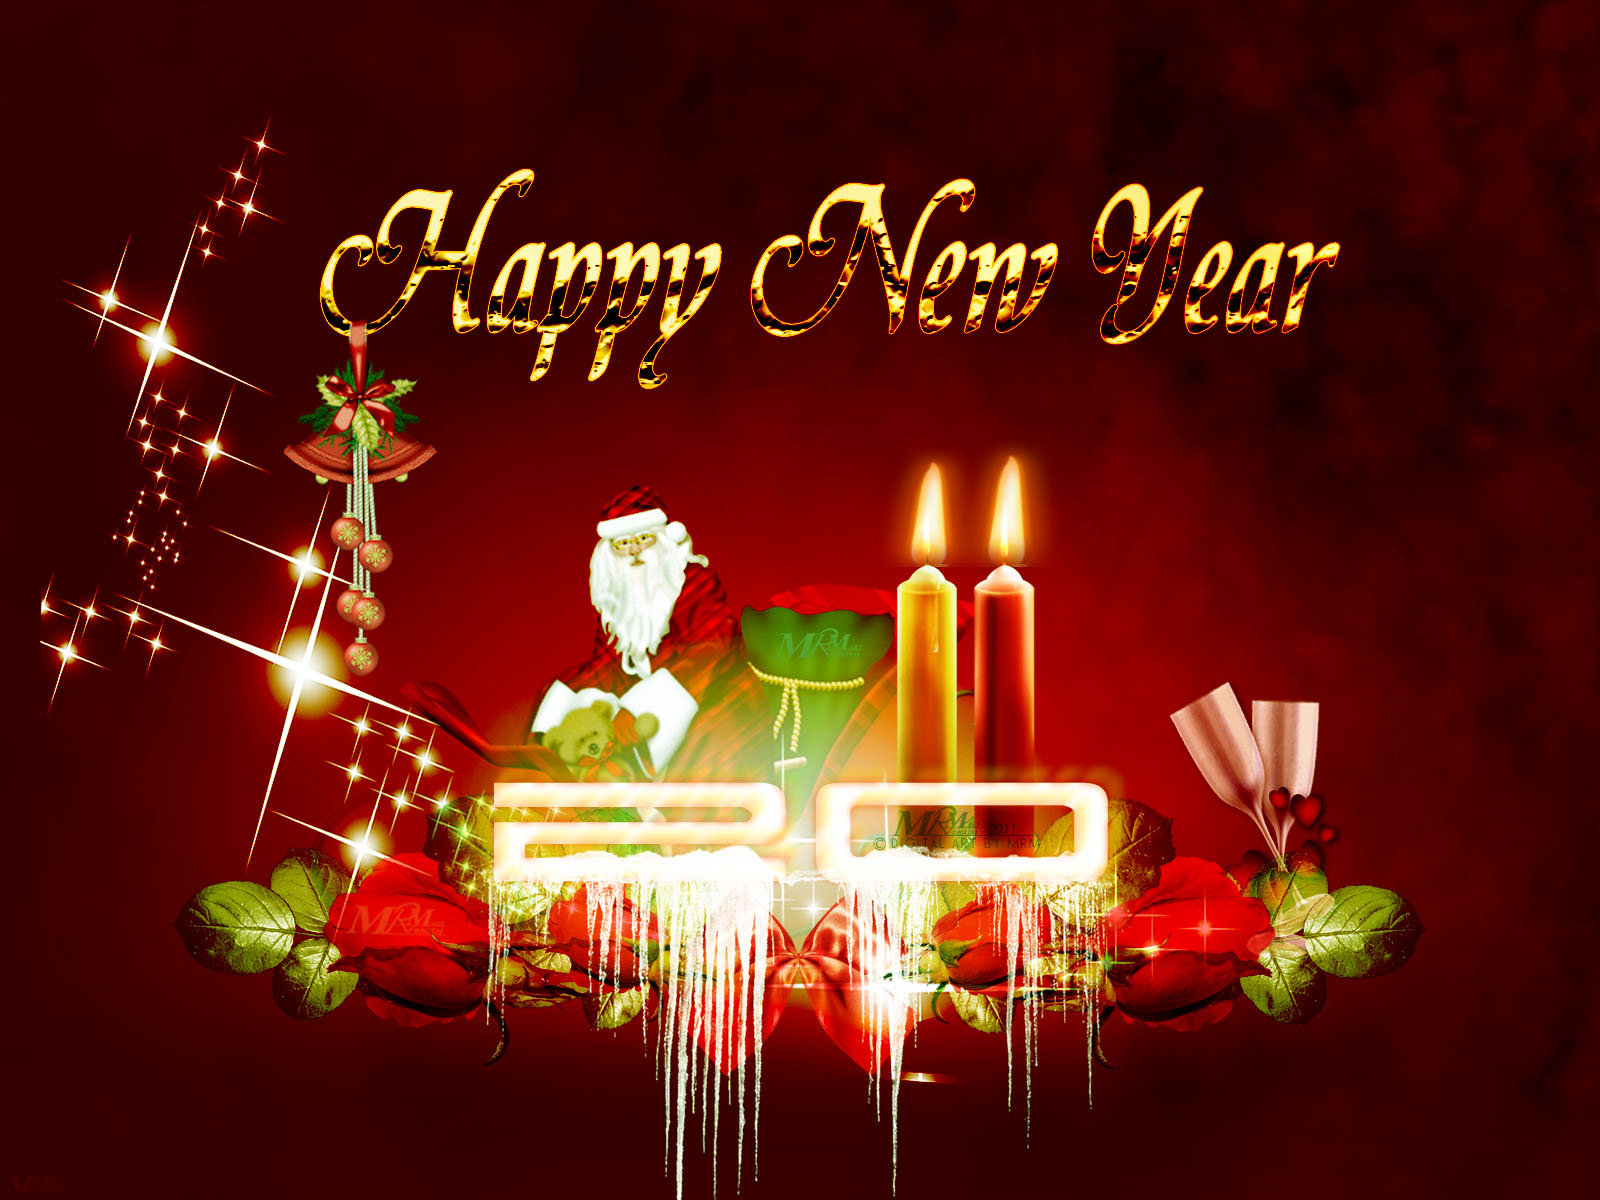 and wallpapers 2011 new year screensavers wallpapers 2011 new year 1600x1200